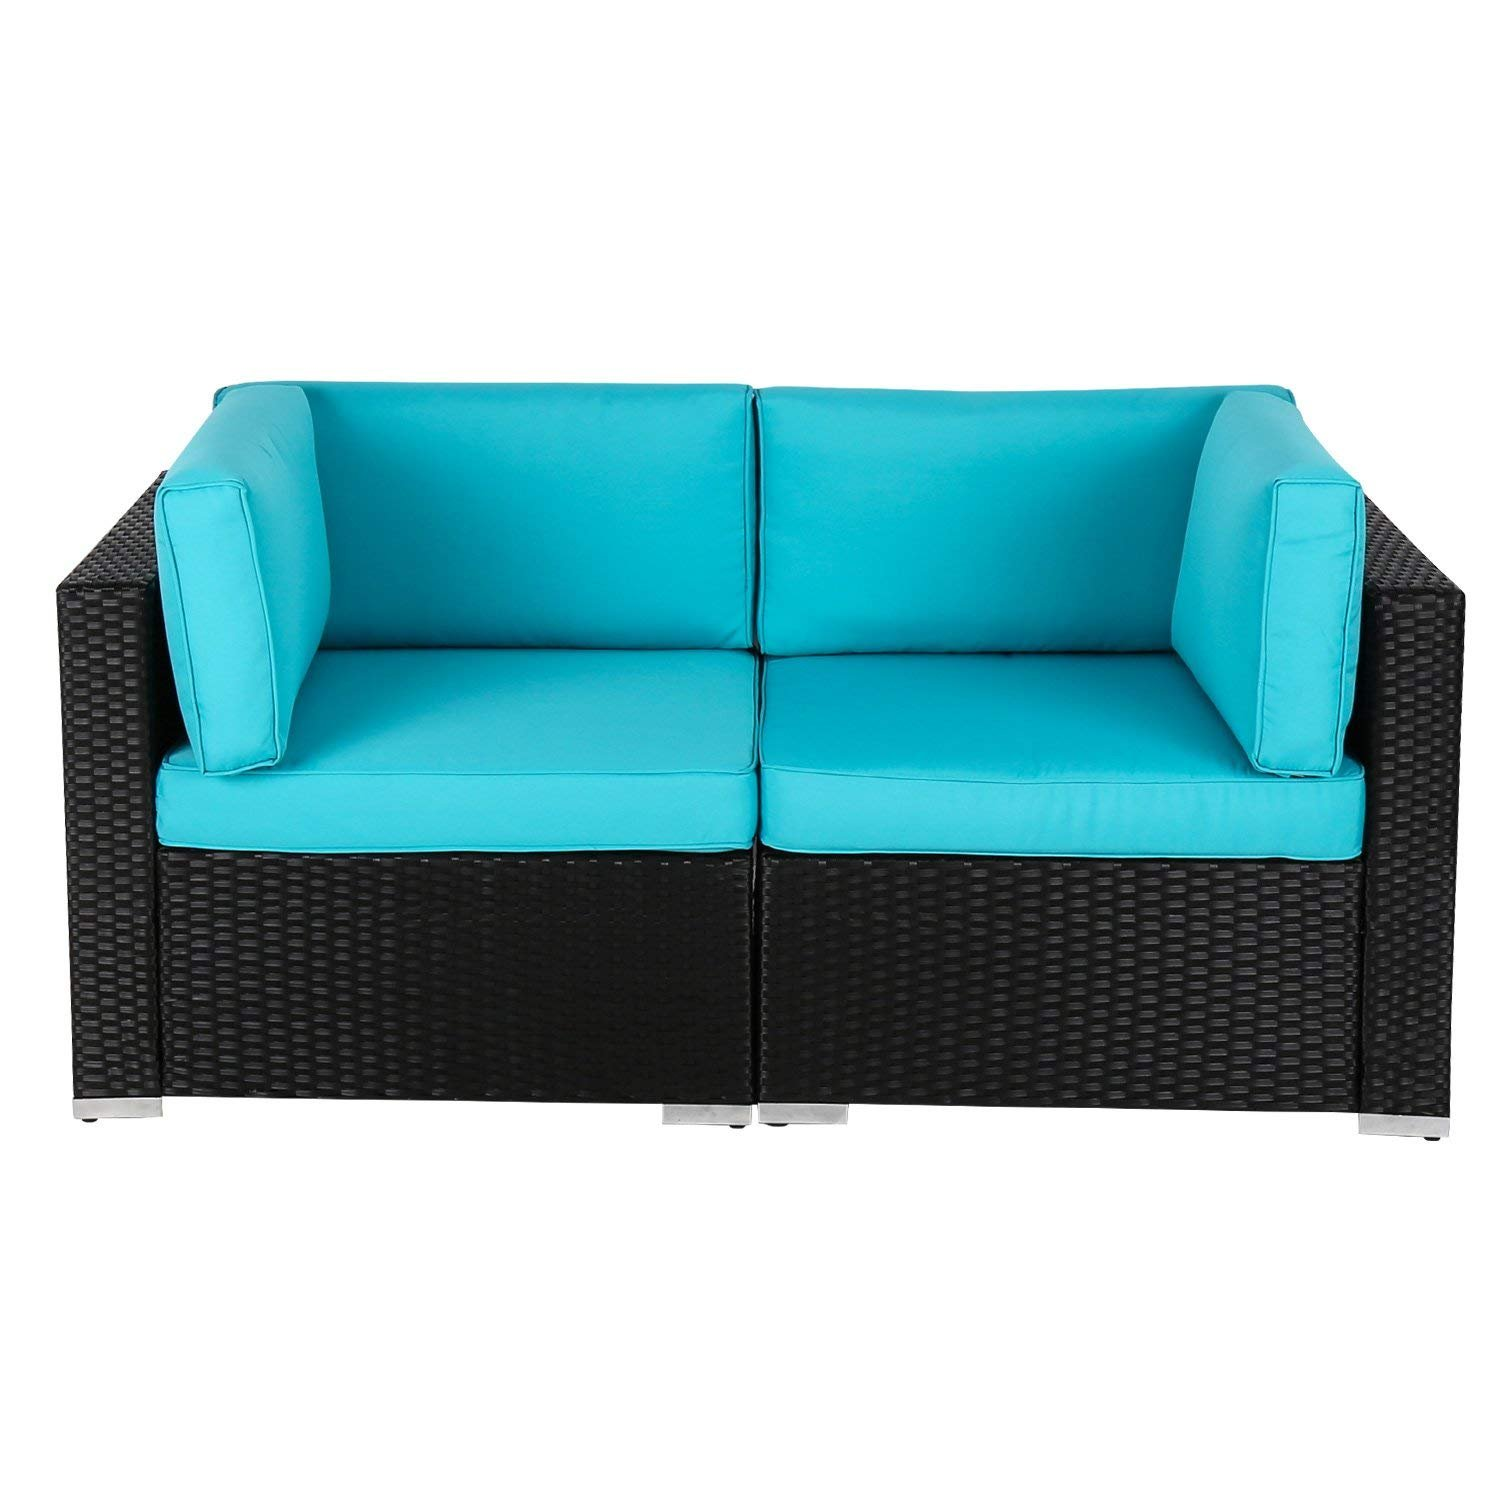 Kinbor 2 PC Wicker Rattan Loveseat Patio Outdoor Wicker Sectional Furniture with Blue Cushion